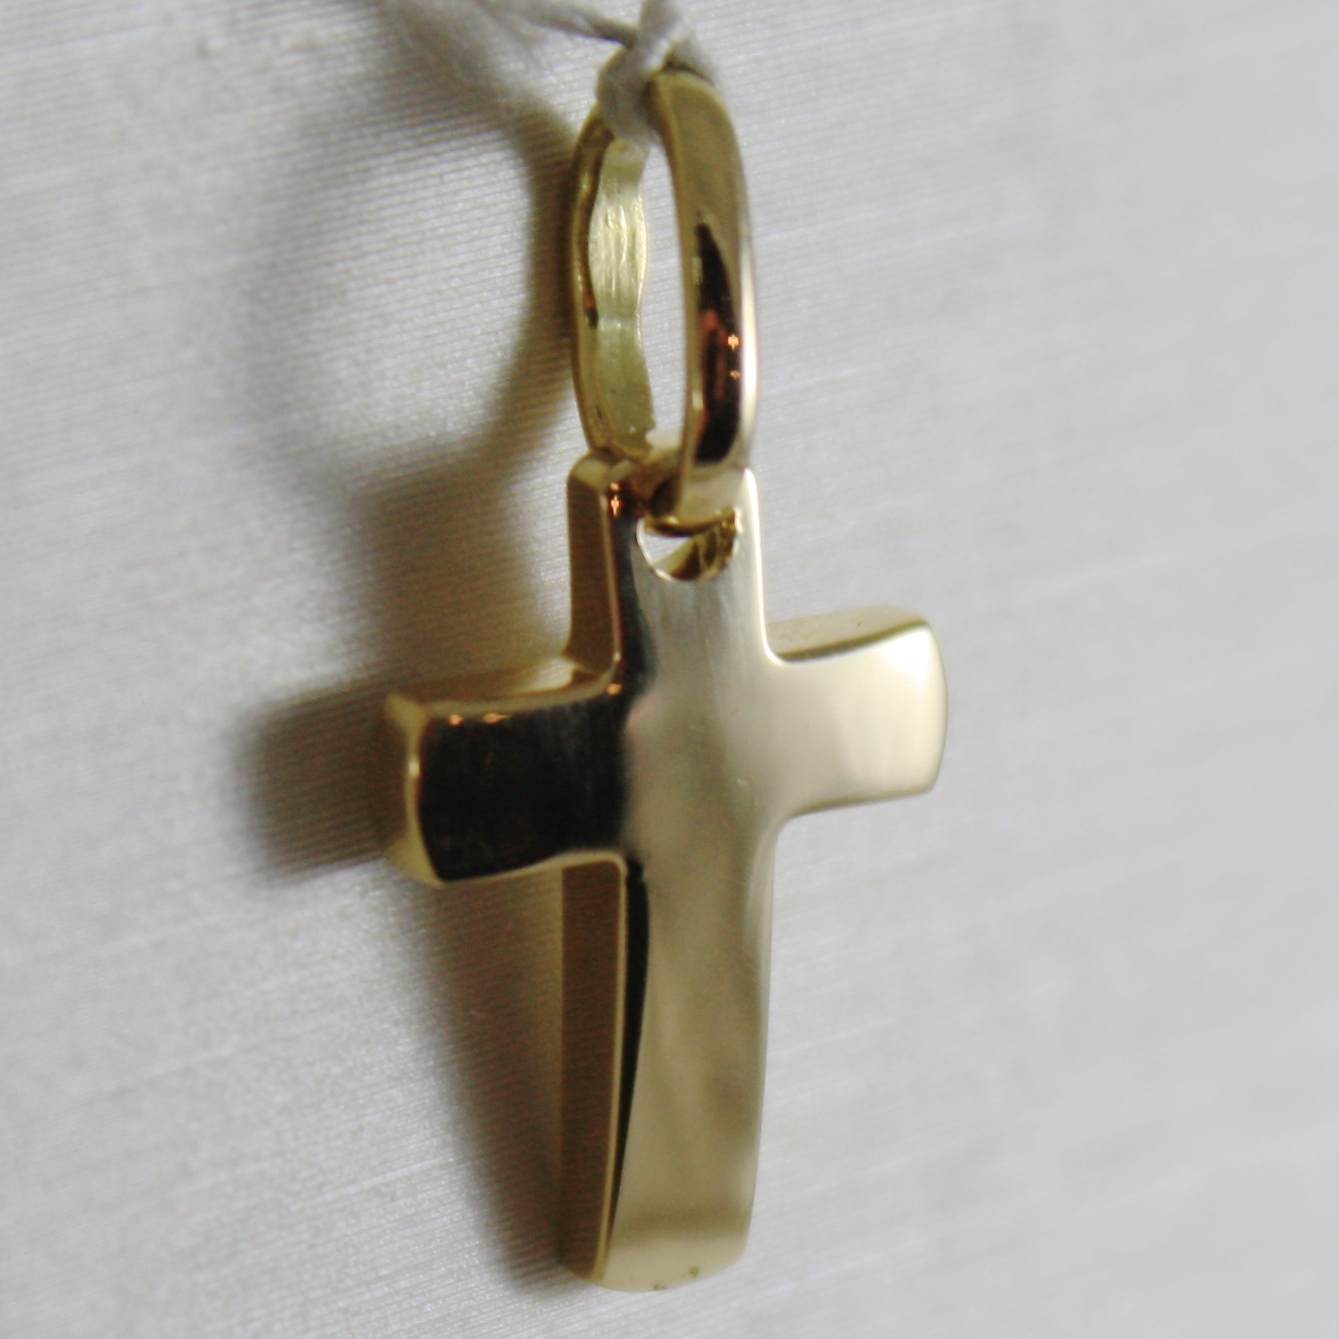 SOLID 18K YELLOW GOLD MINI CROSS SQUARED ARCHED, SMOOTH, LUMINOUS, MADE IN ITALY